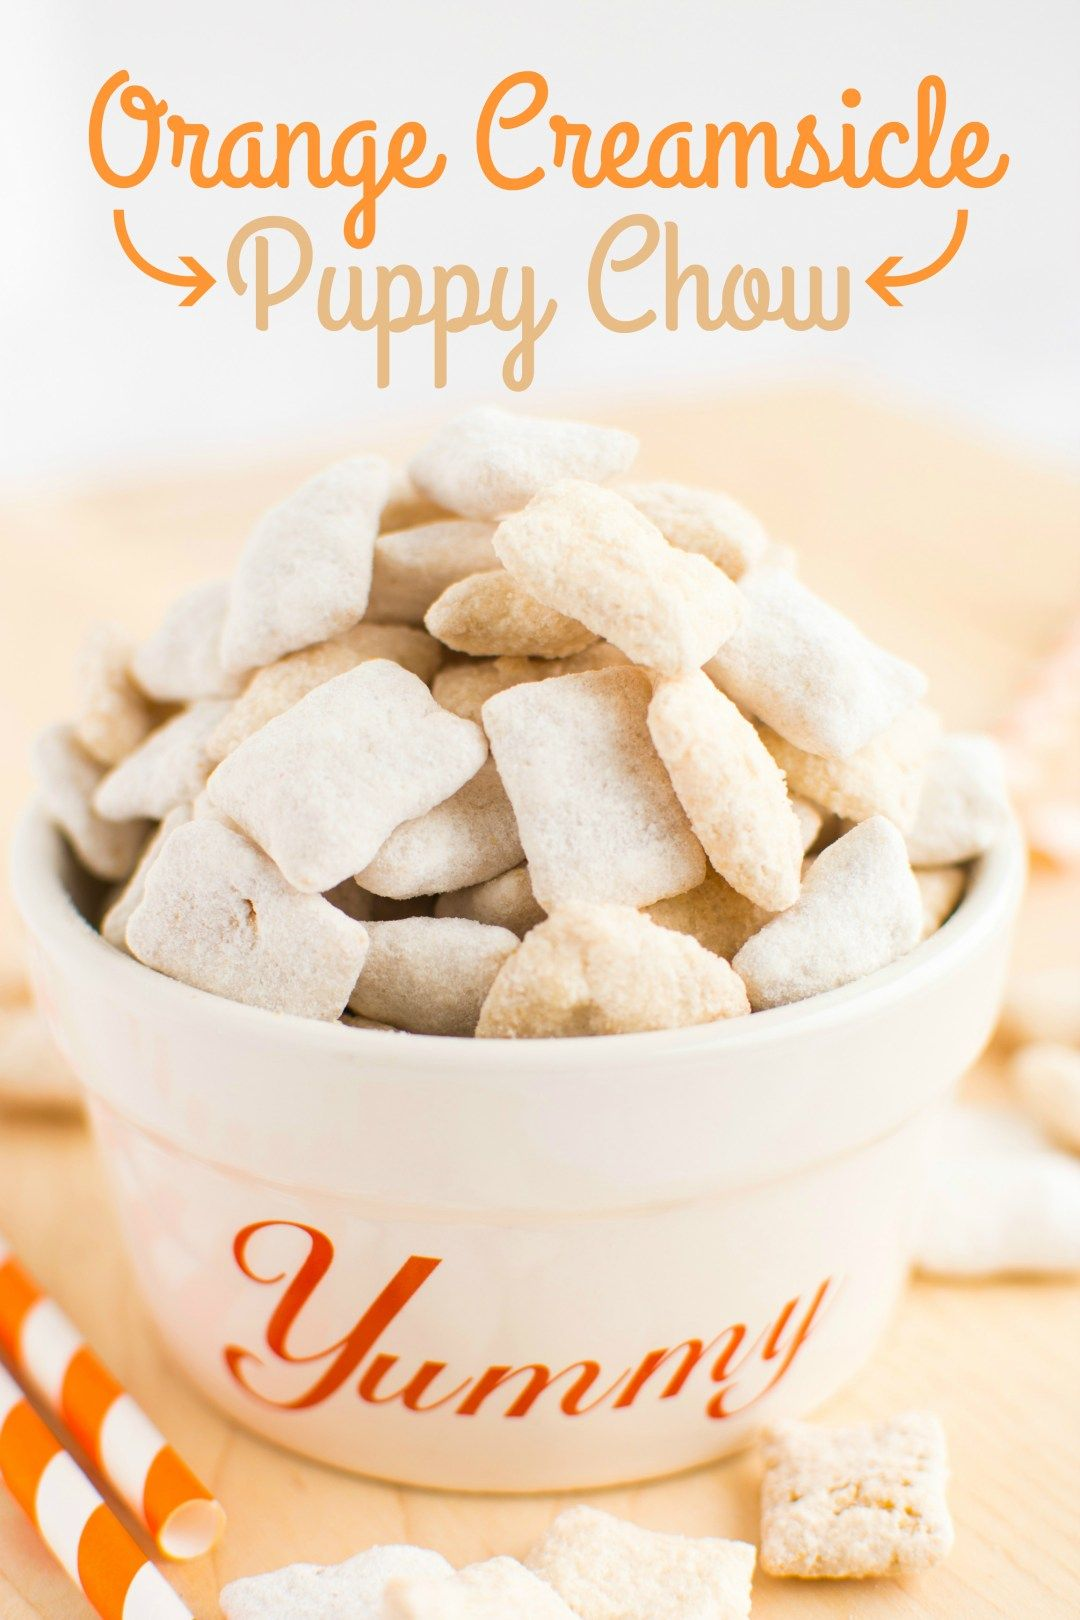 Orange Creamsicle Puppy Chow With Images Orange Creamsicle Chex Mix Lemon Puppy Chow